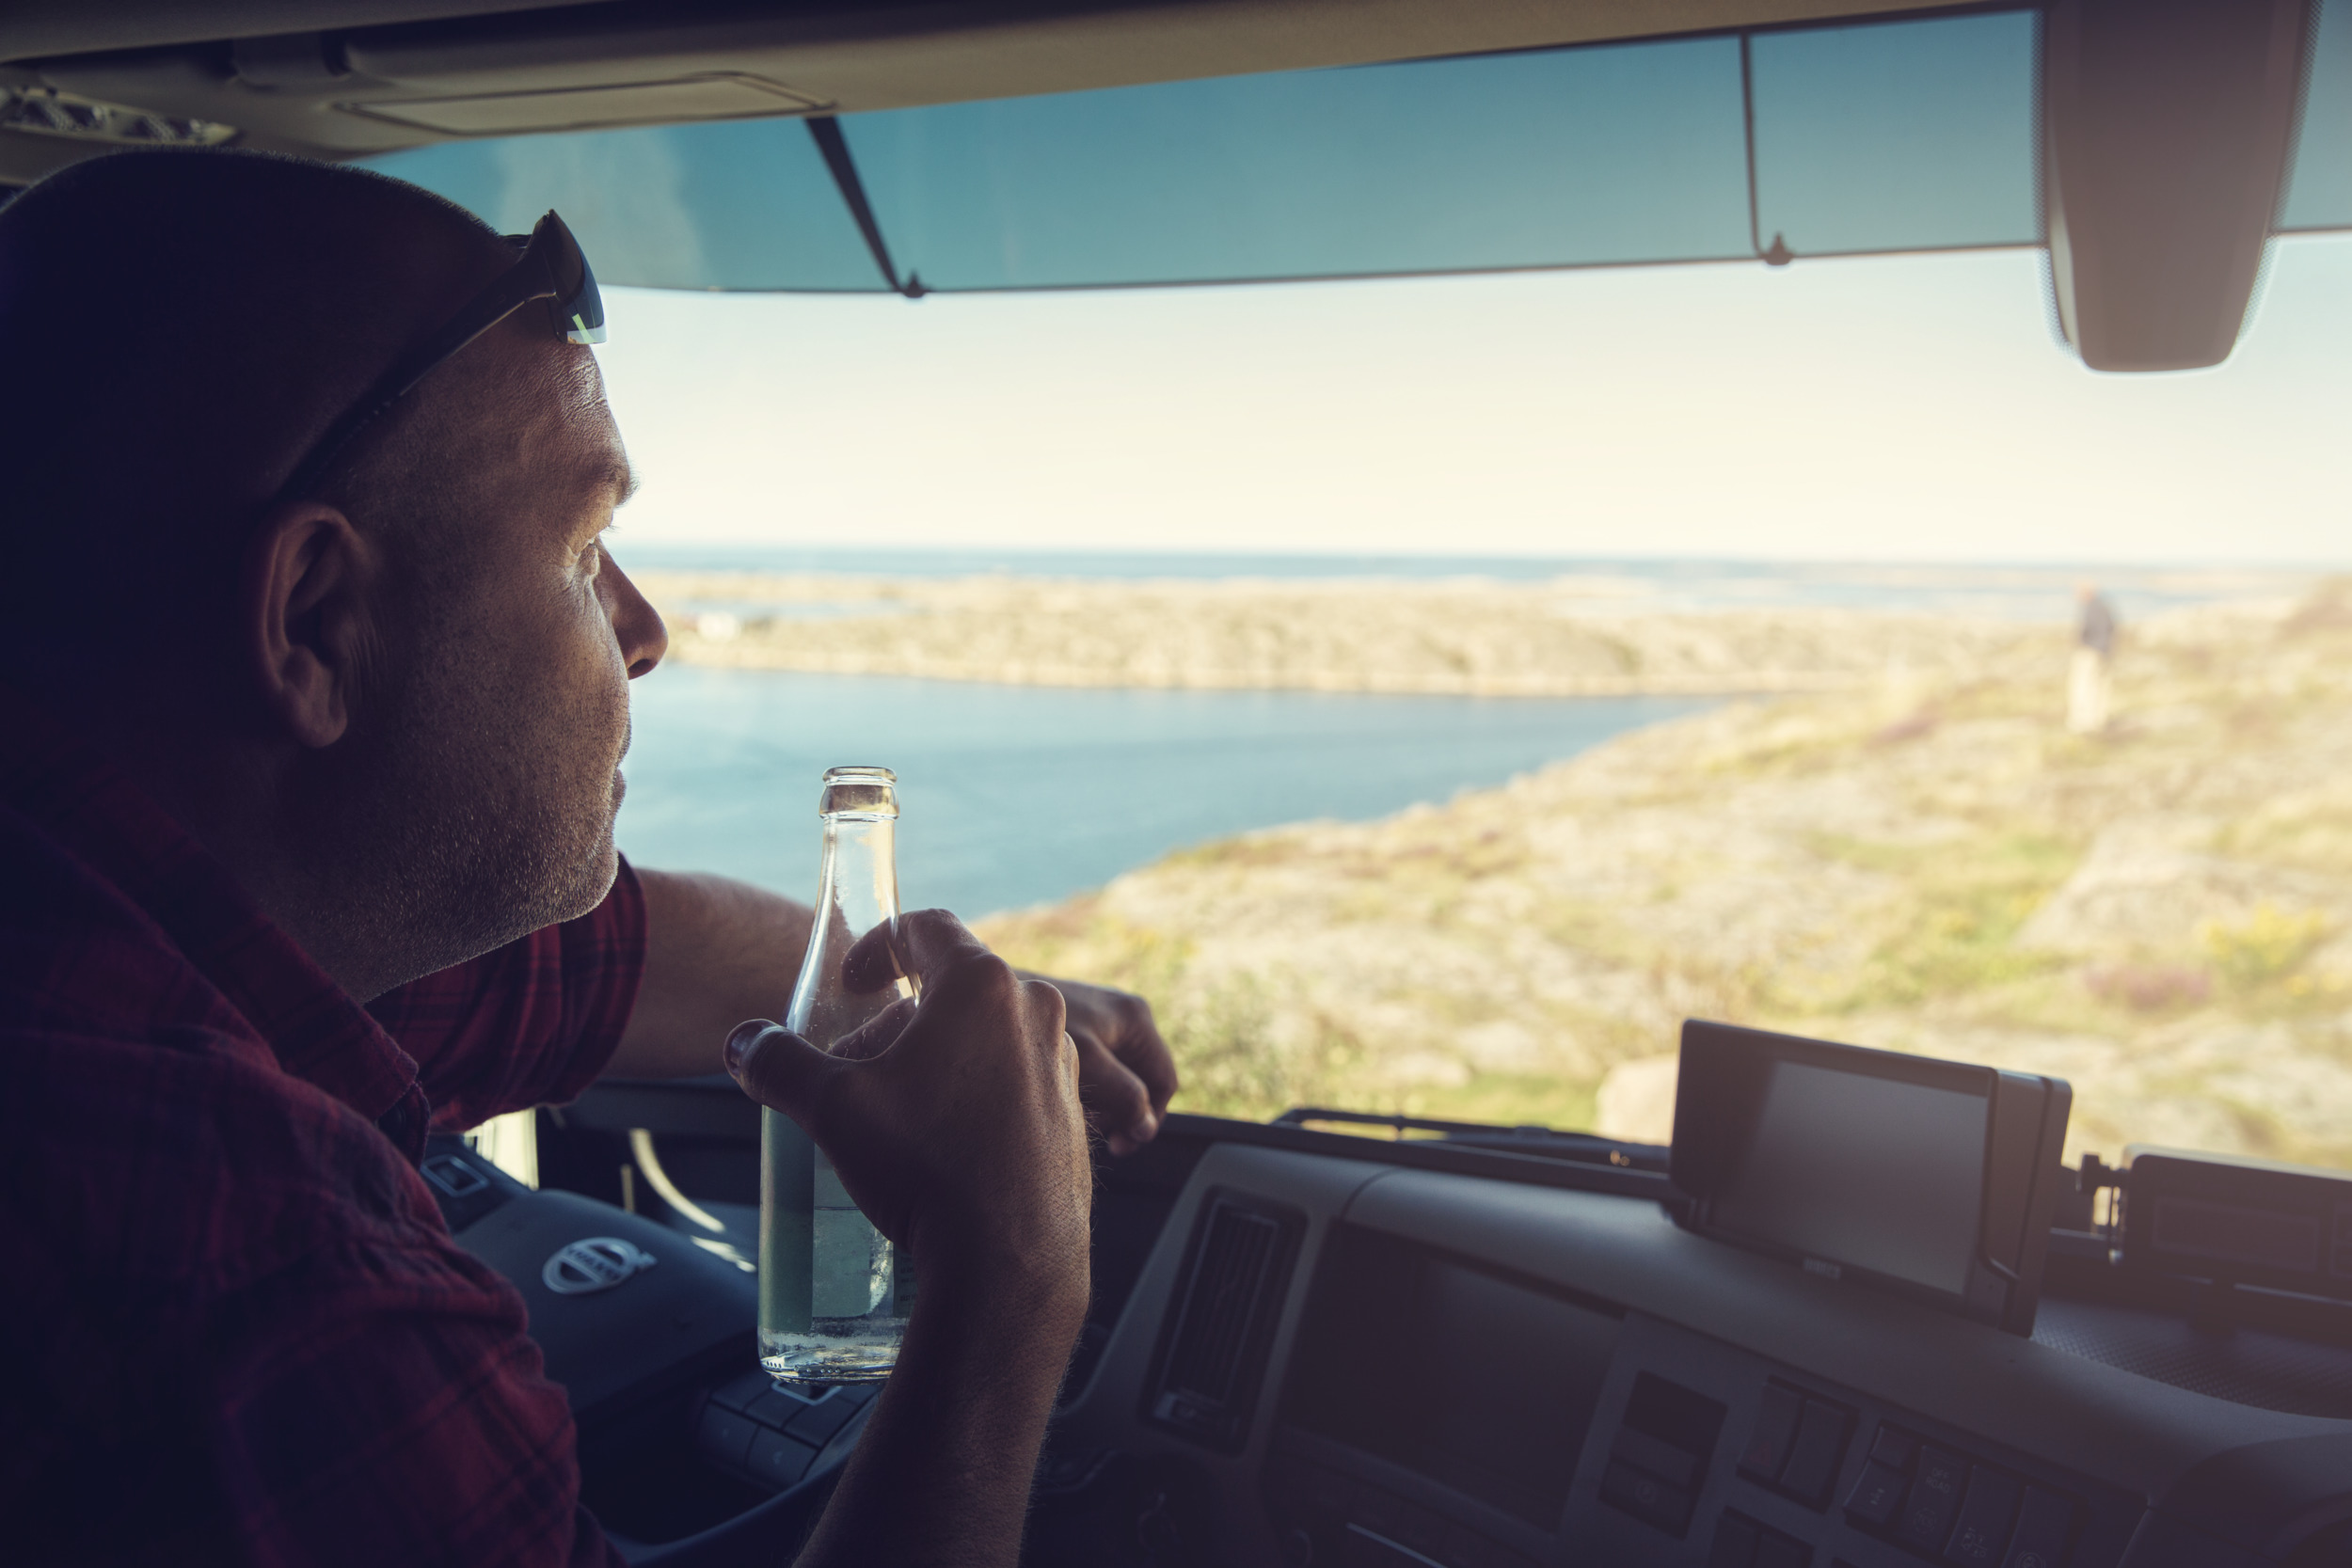 bottle, water, drink, dashboard, truck, travel, transport, transportation, seaside, rocks, cliffs, lighthouse, glasses, gps, tom tom